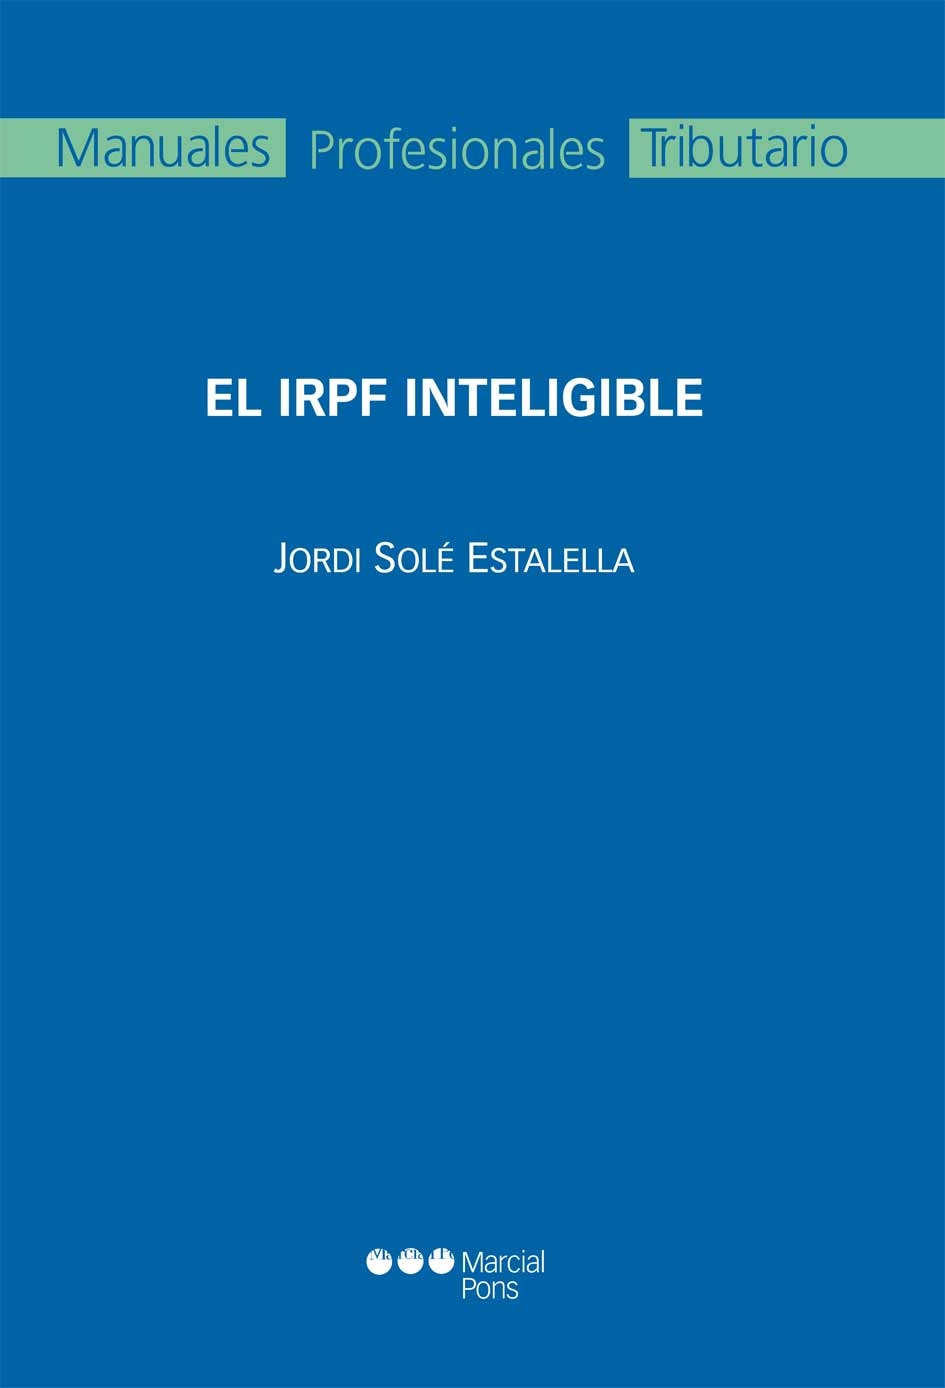 El IRPF inteligible